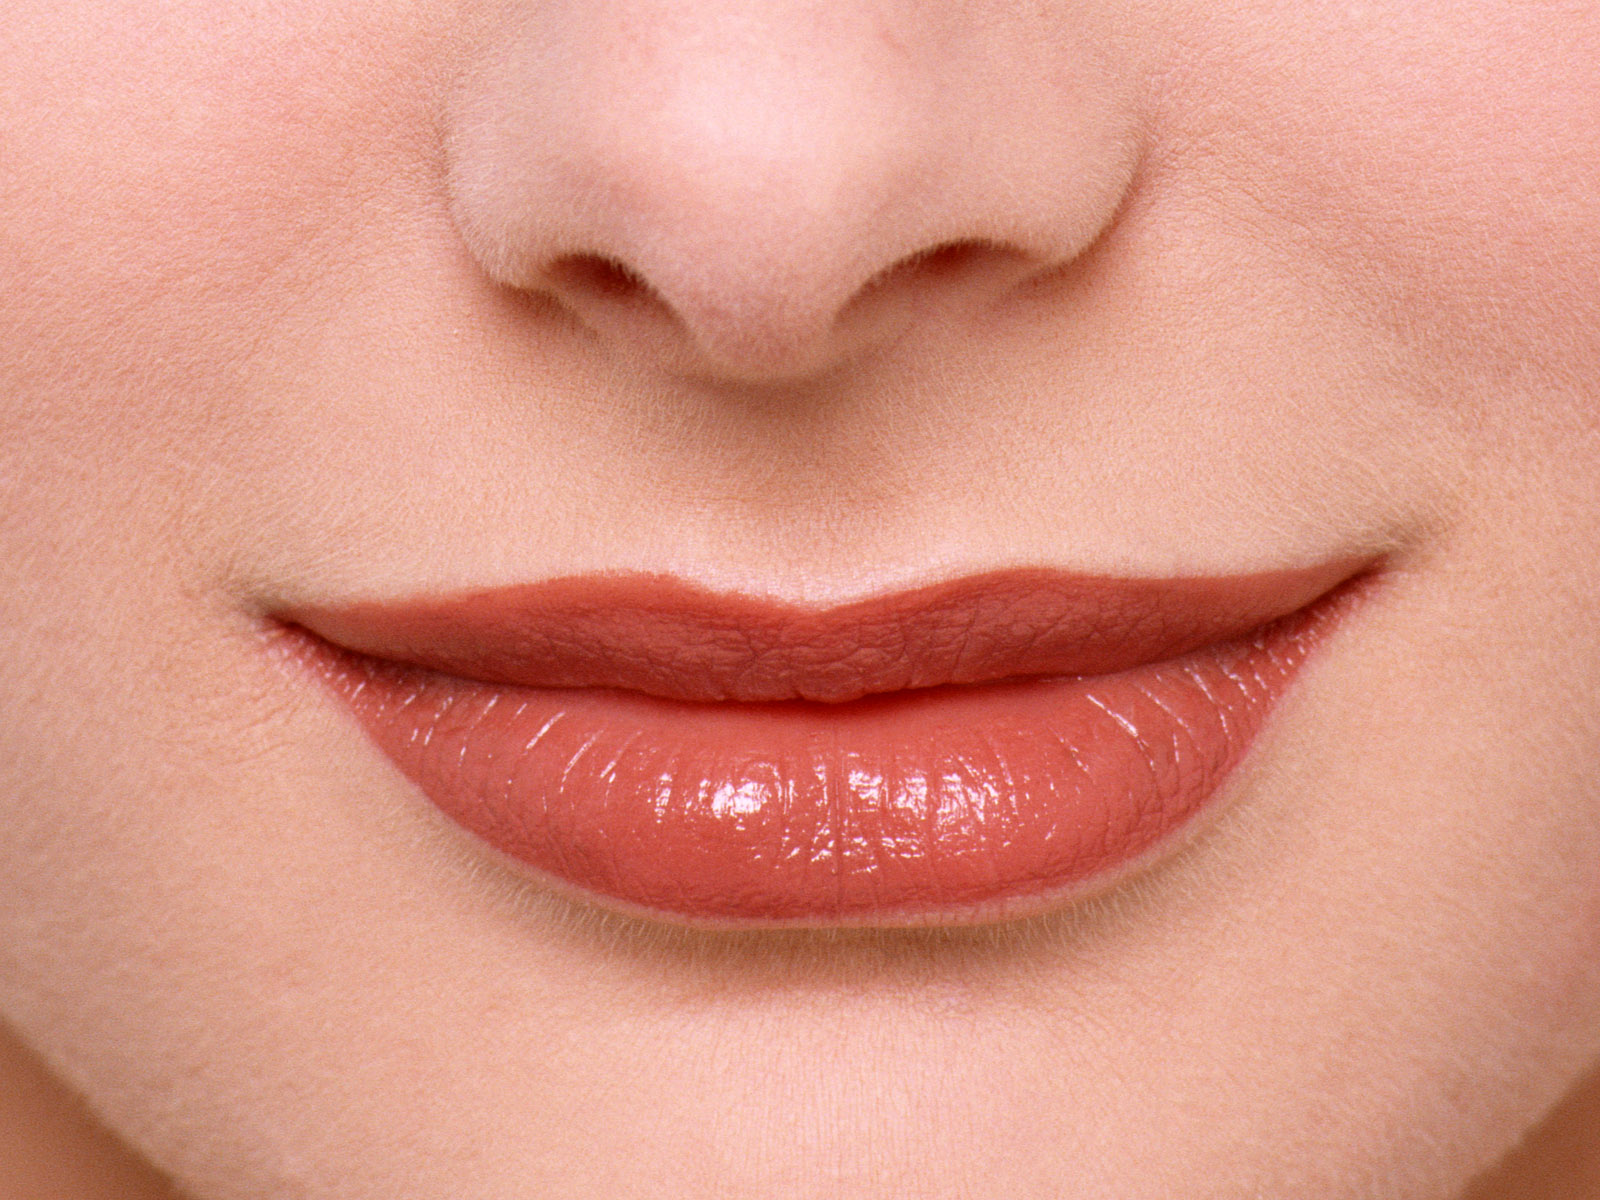 Pic Of Mouth 26